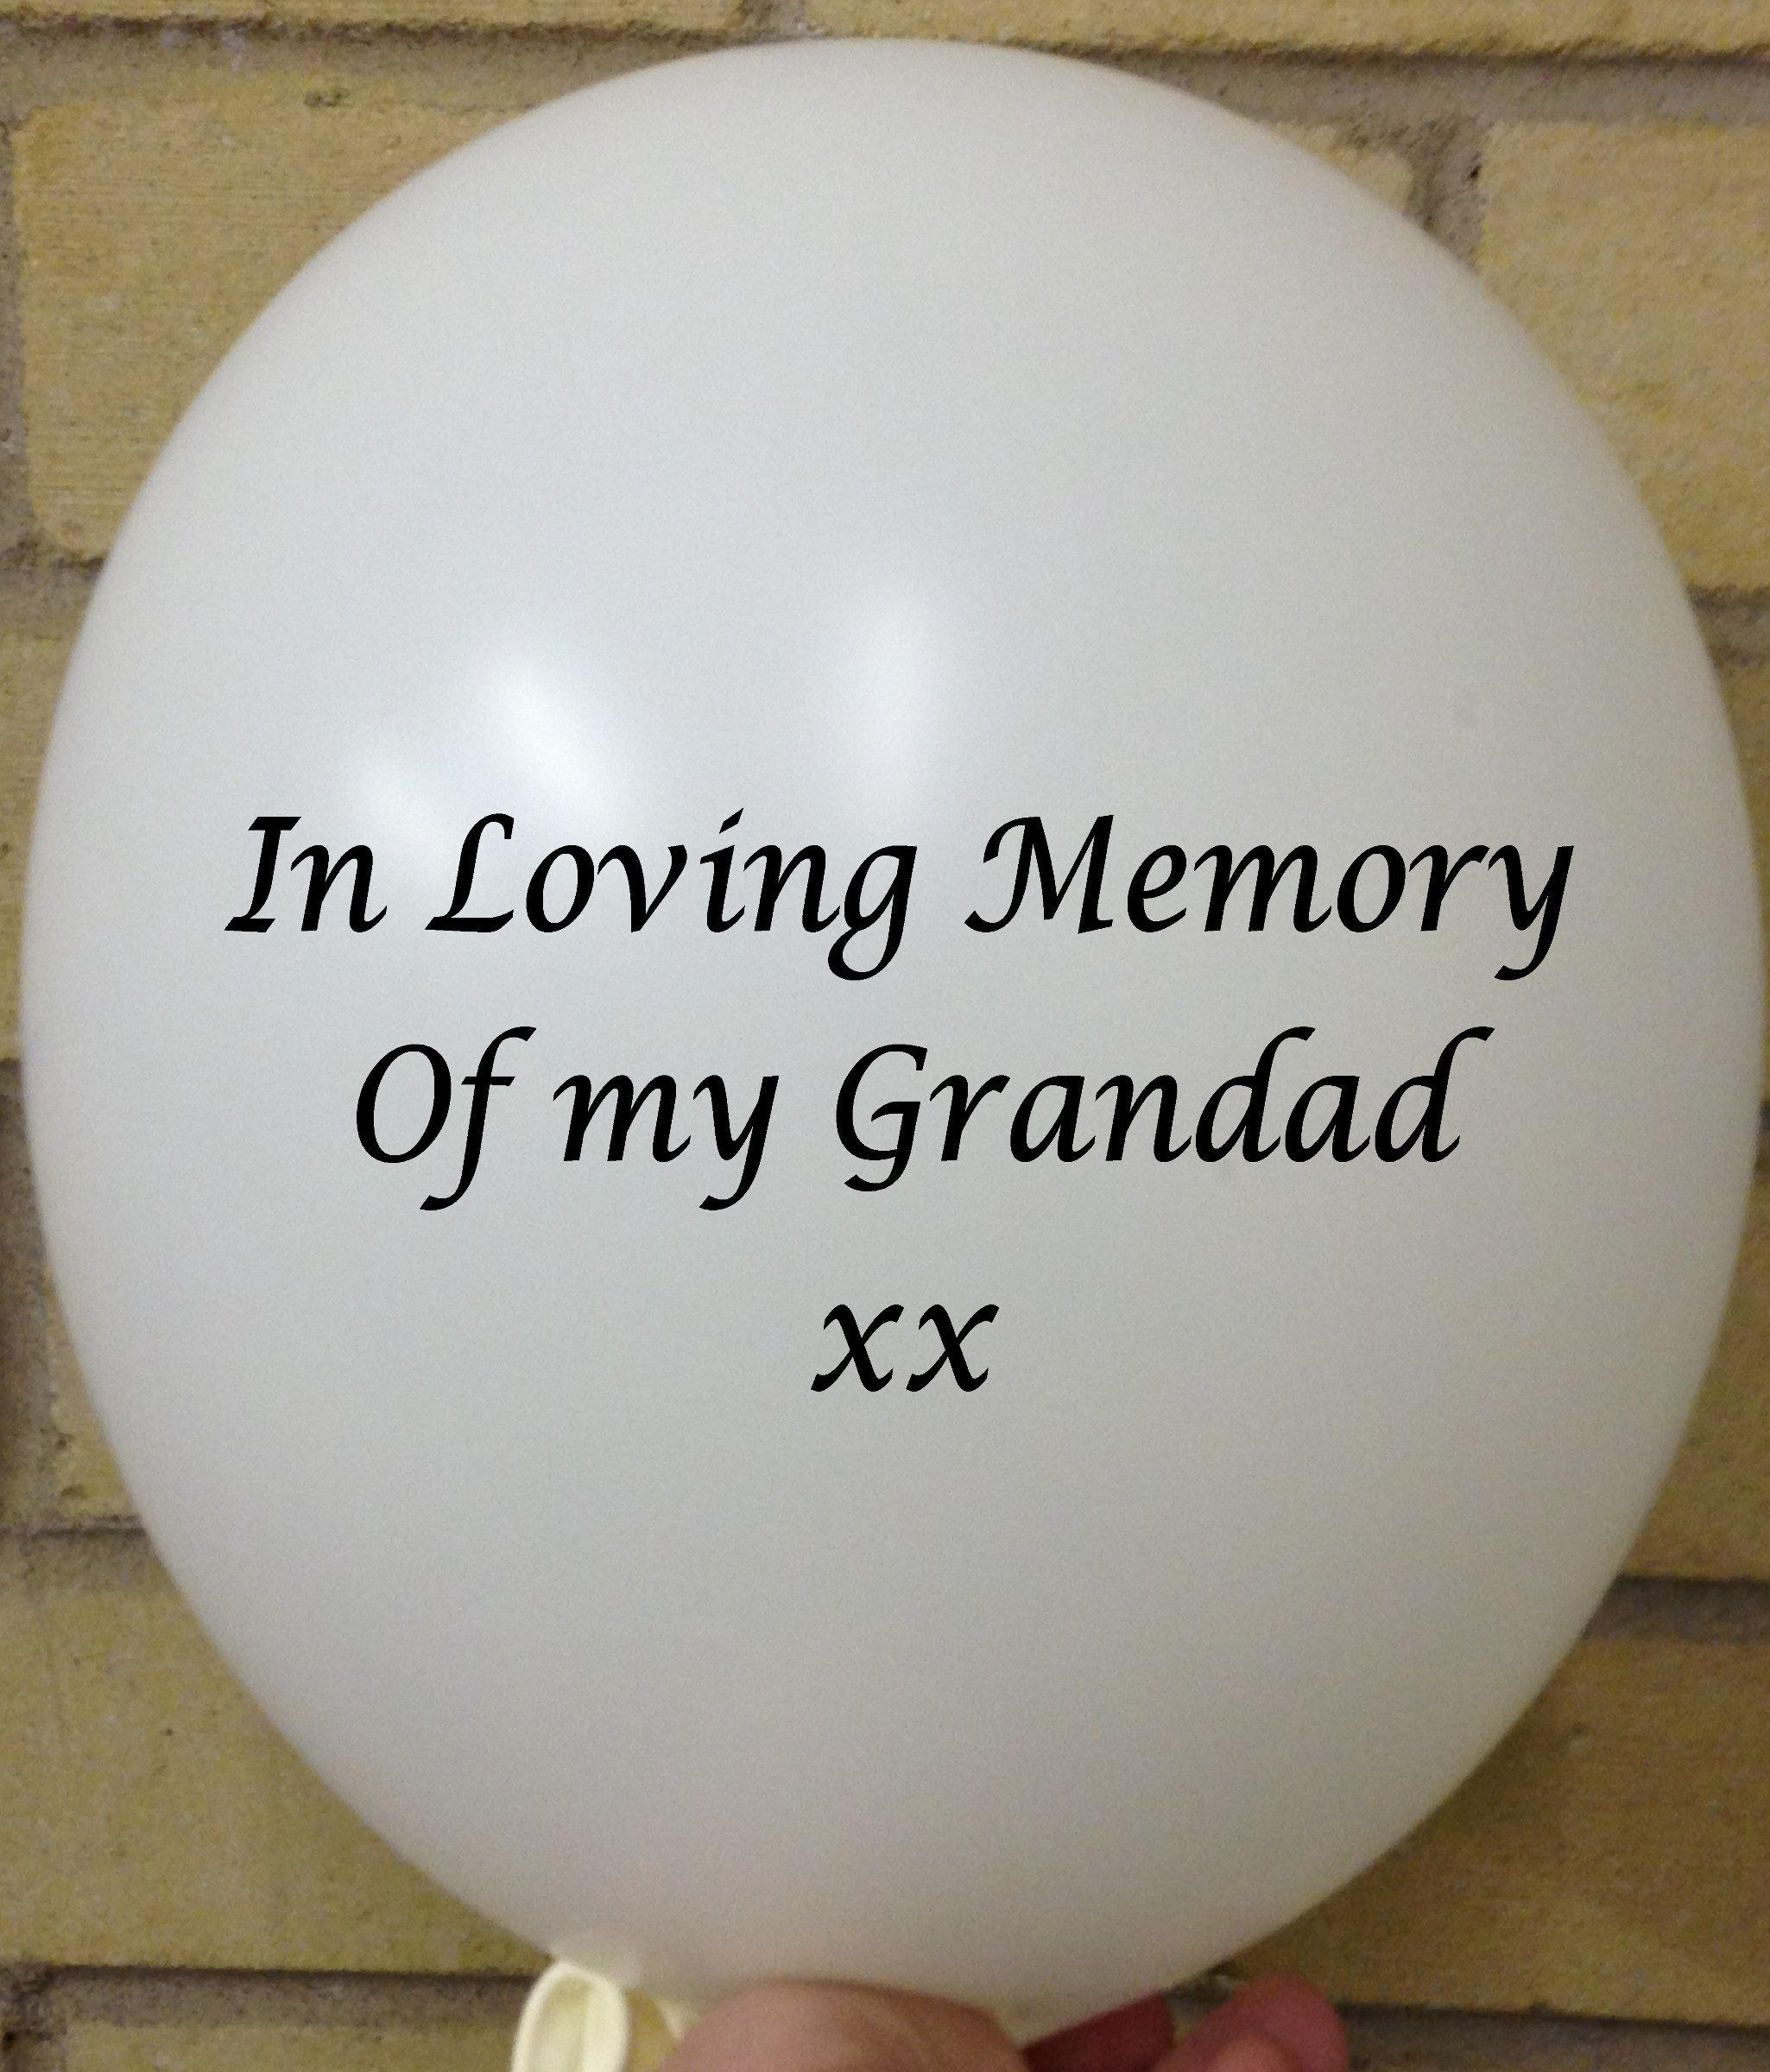 Memorial Balloons In Loving Memory of Grandad